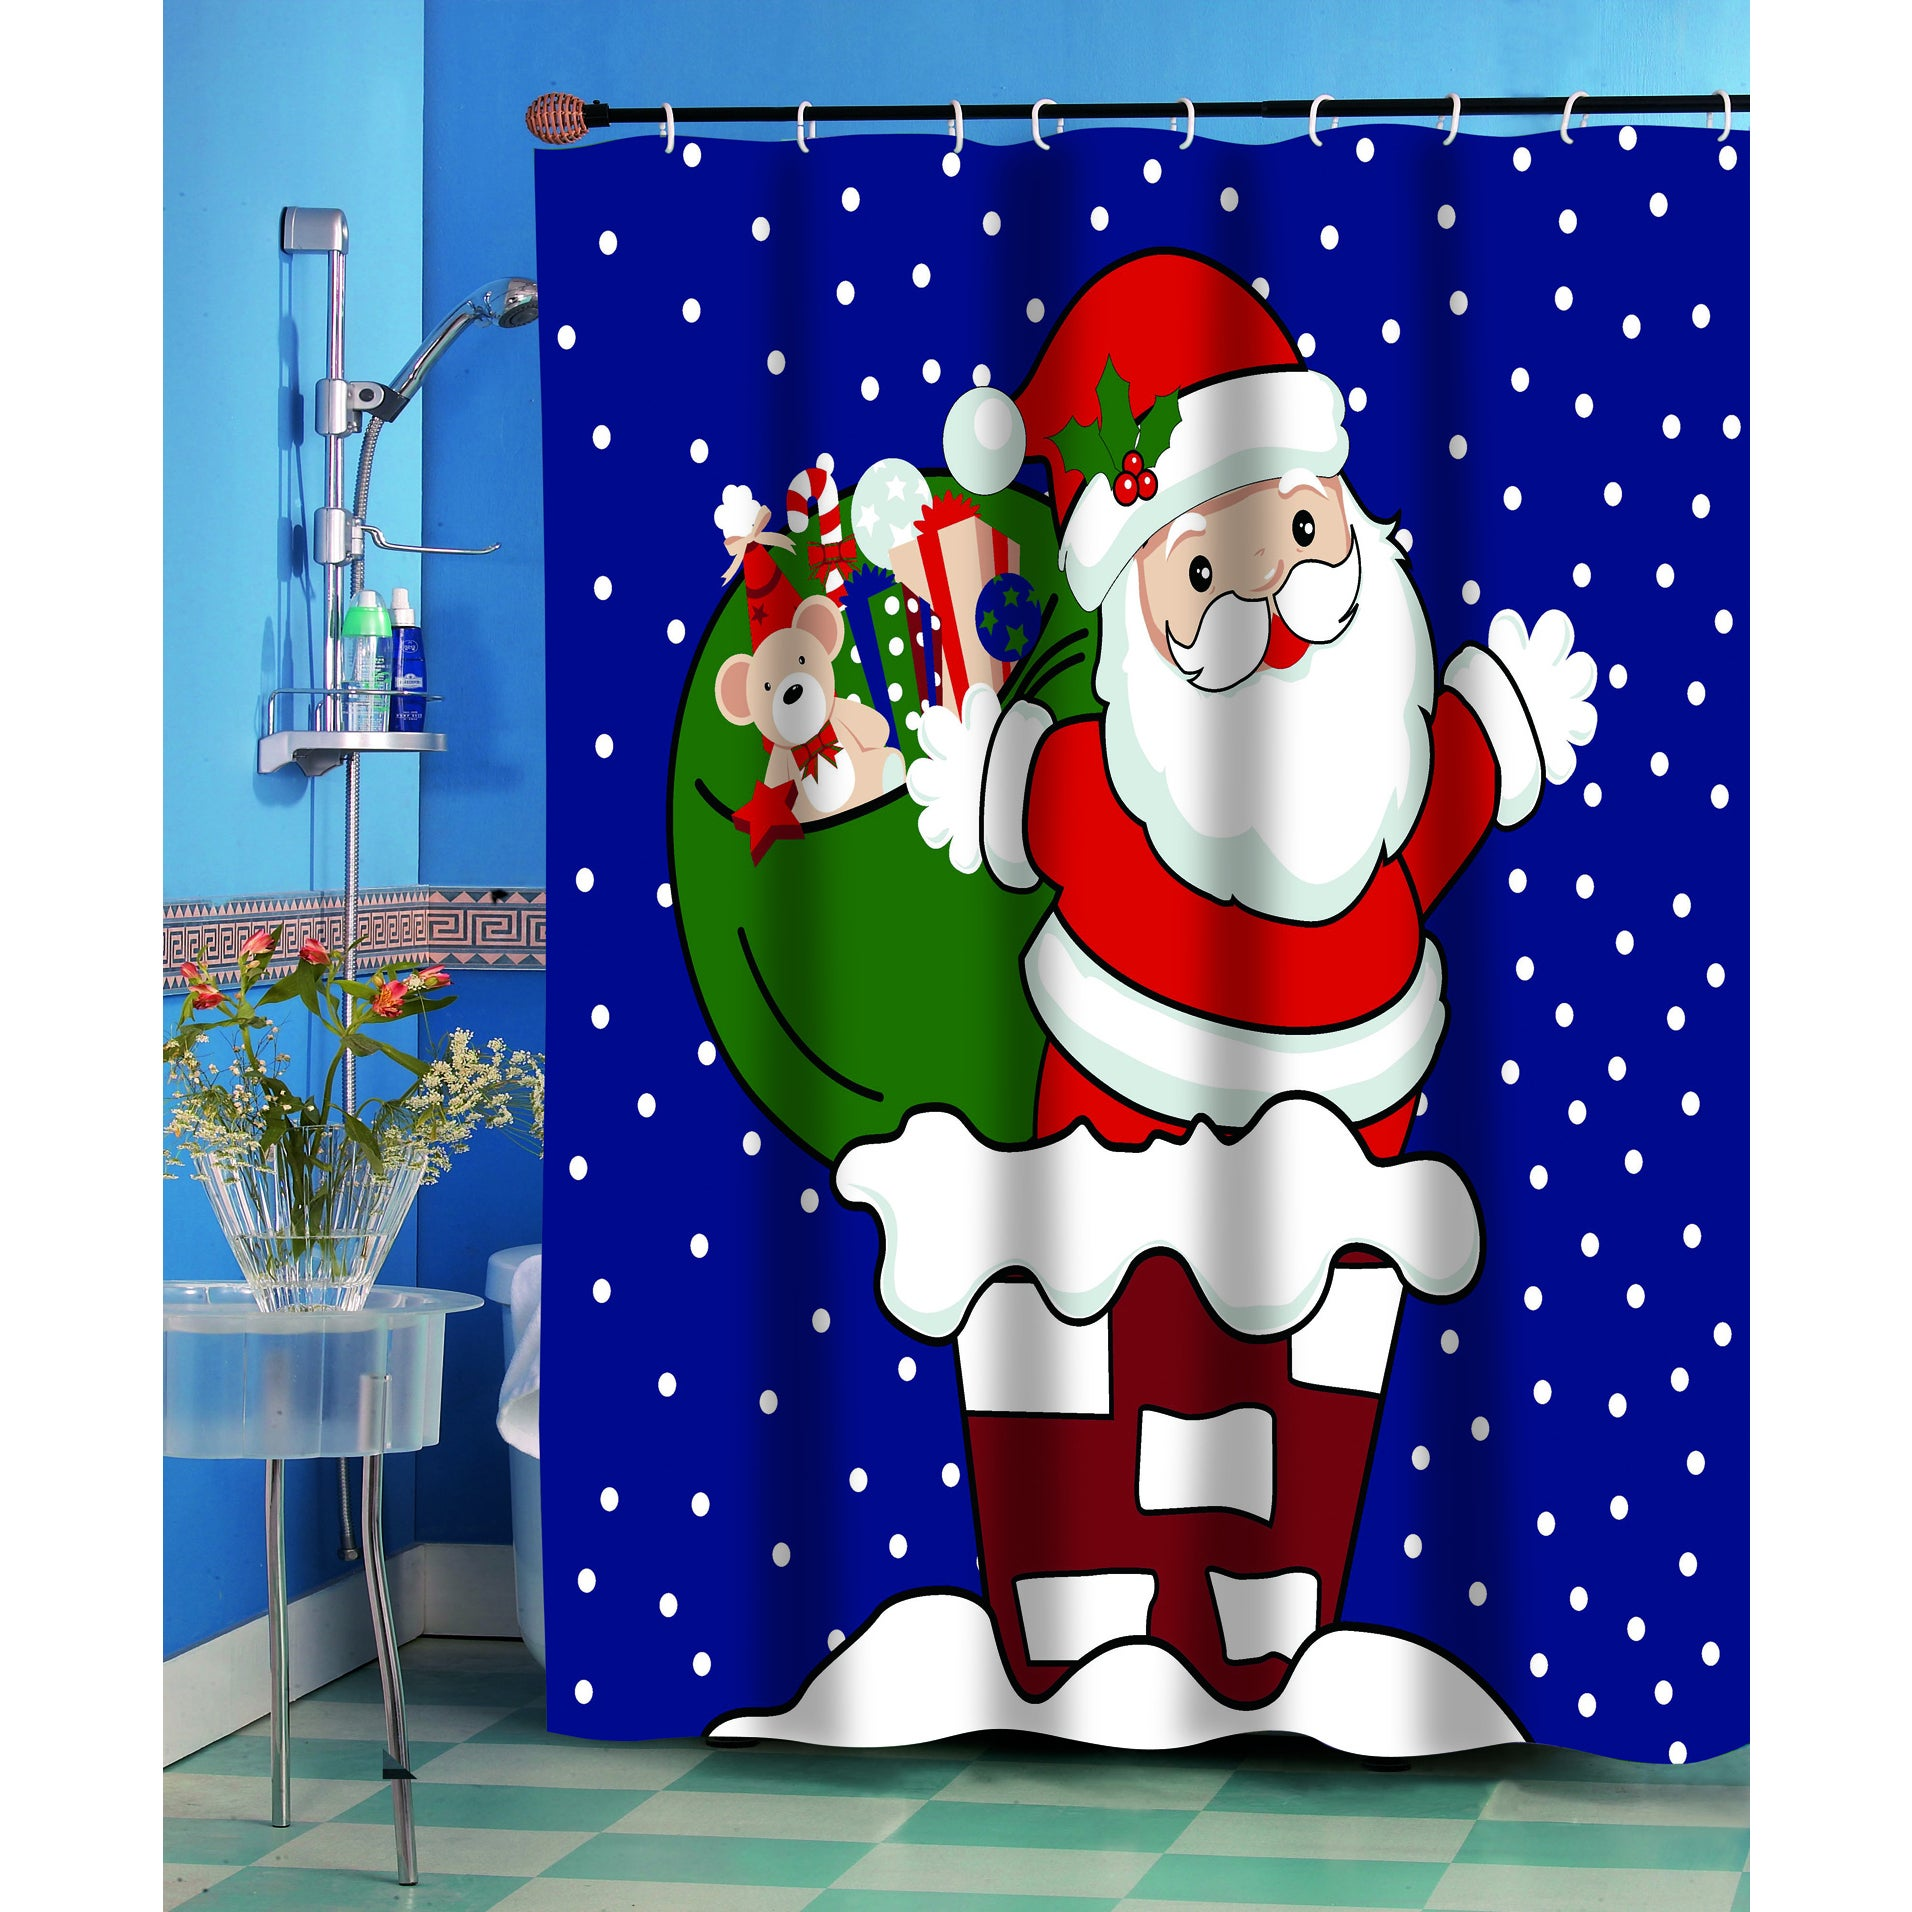 Up On The Rooftop Christmas Themed Holiday Fabric Shower Curtain Multi